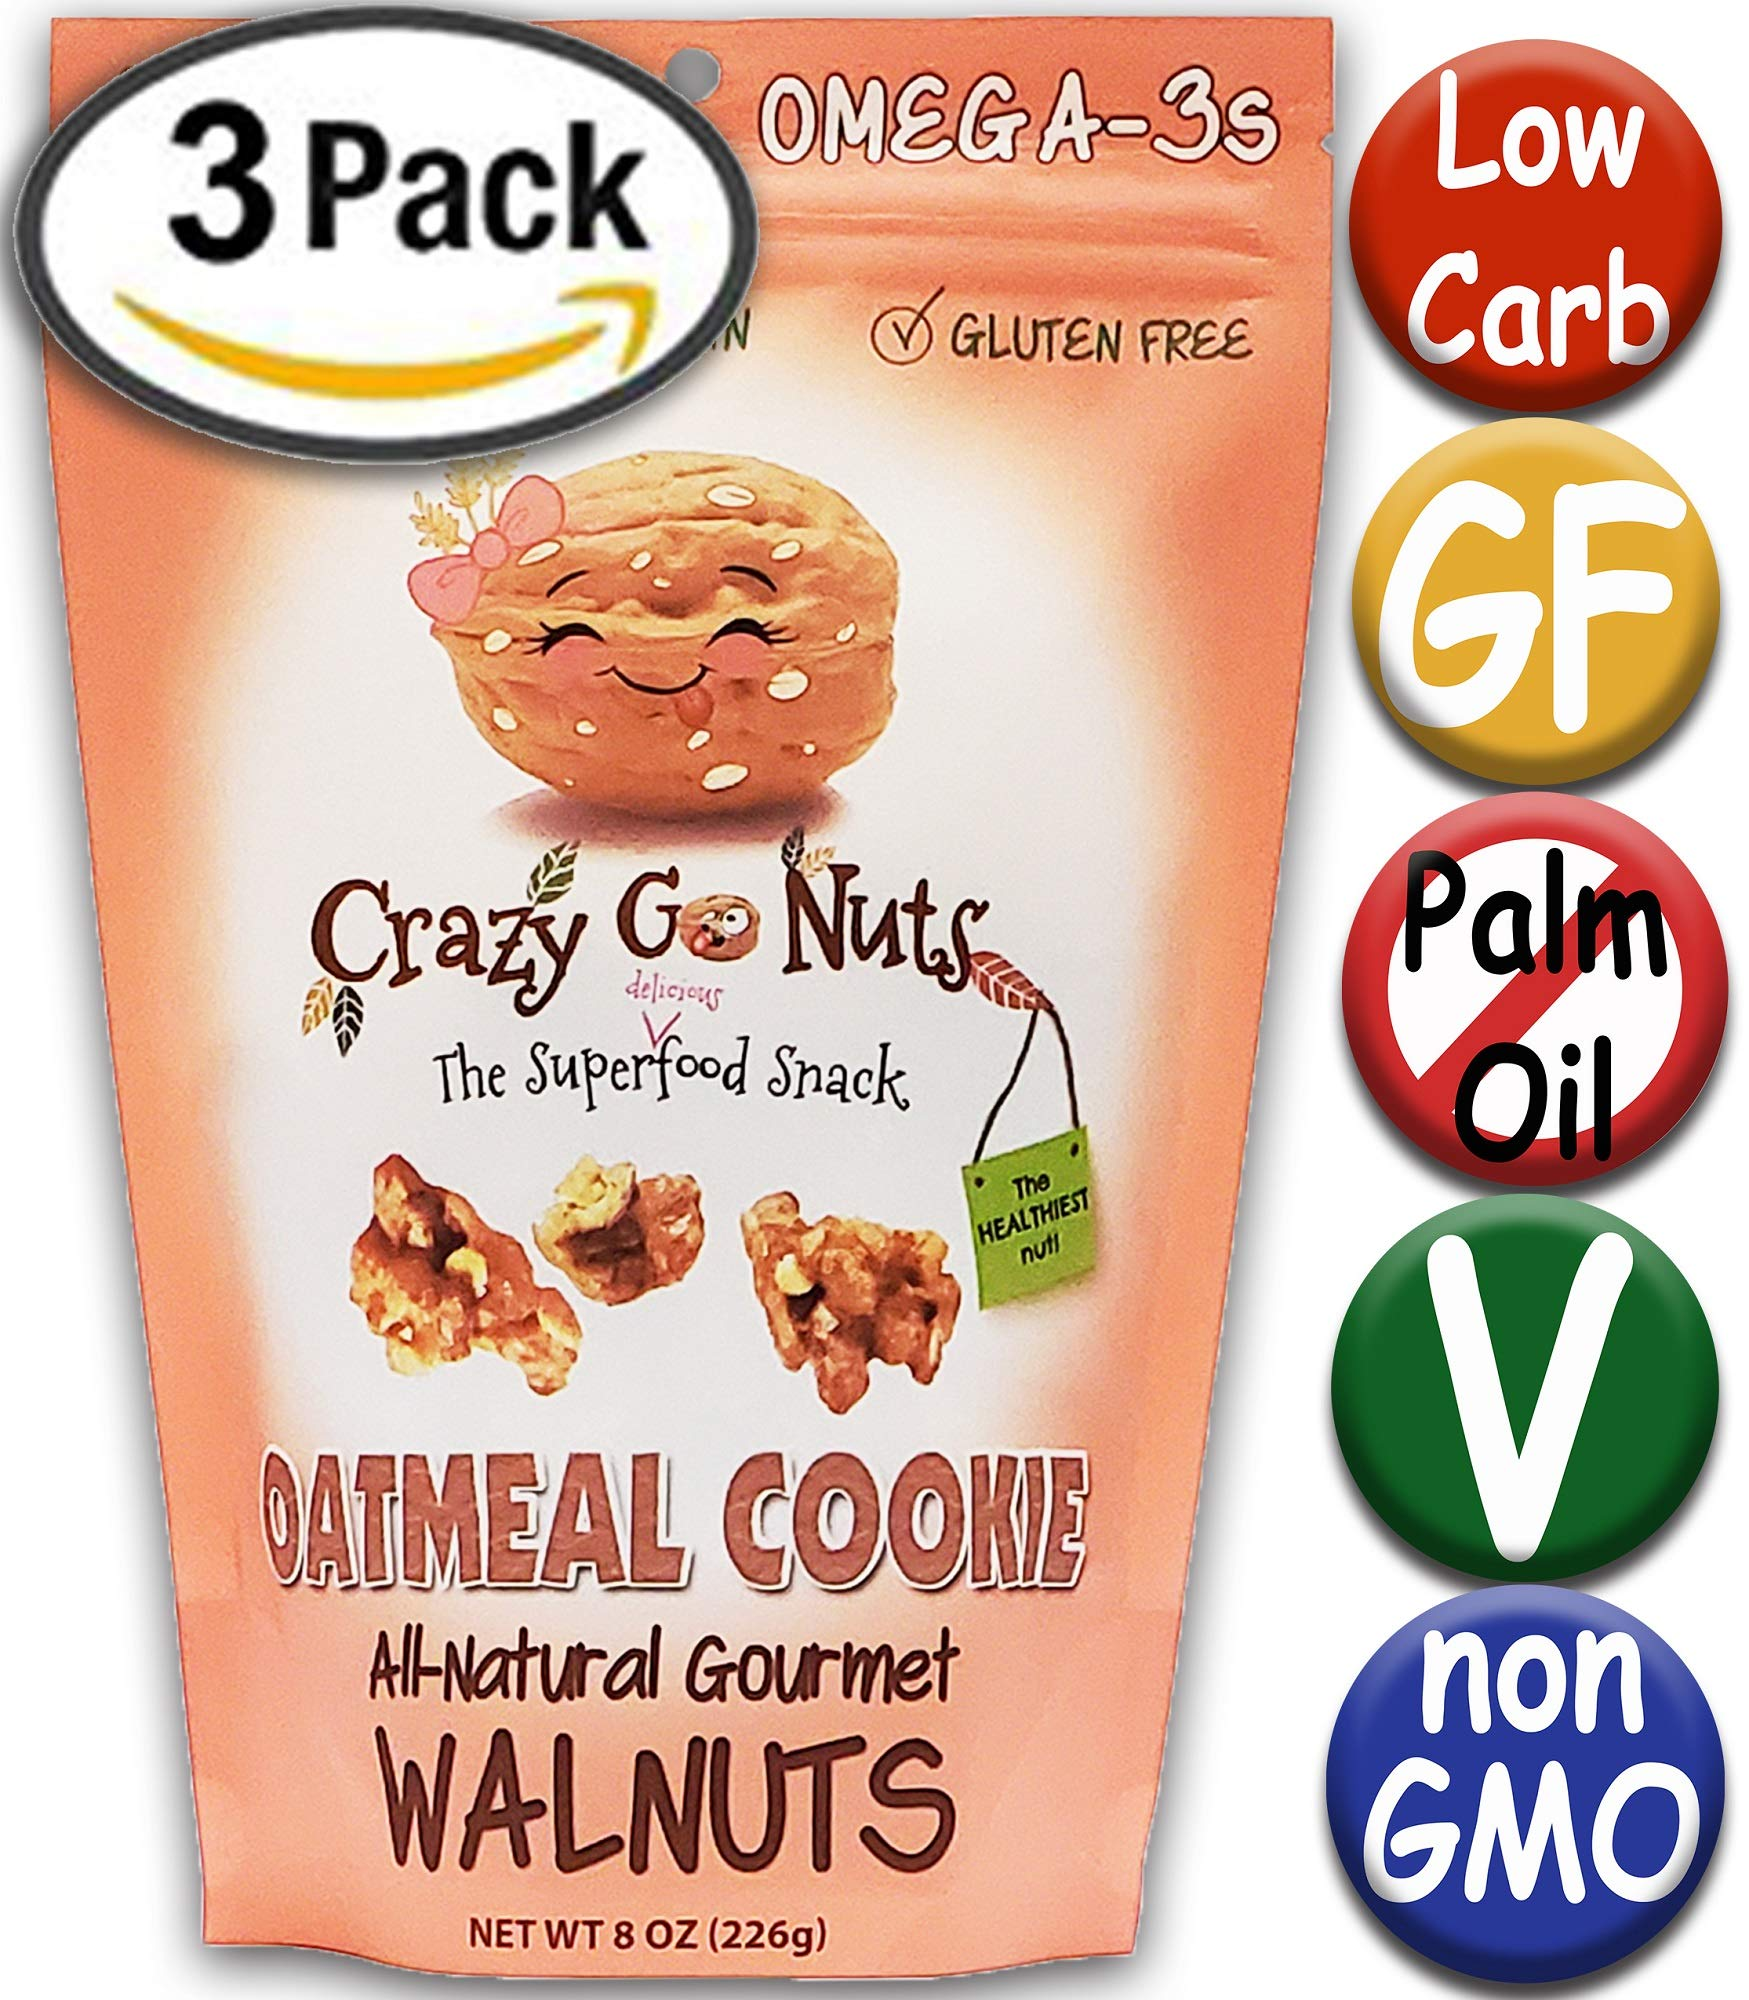 Crazy Go Nuts Flavored Walnuts & Healthy Snacks: Gluten Free, Vegan, Non GMO, 8oz 3 pack - Oatmeal Cookie by Crazy Go Nuts